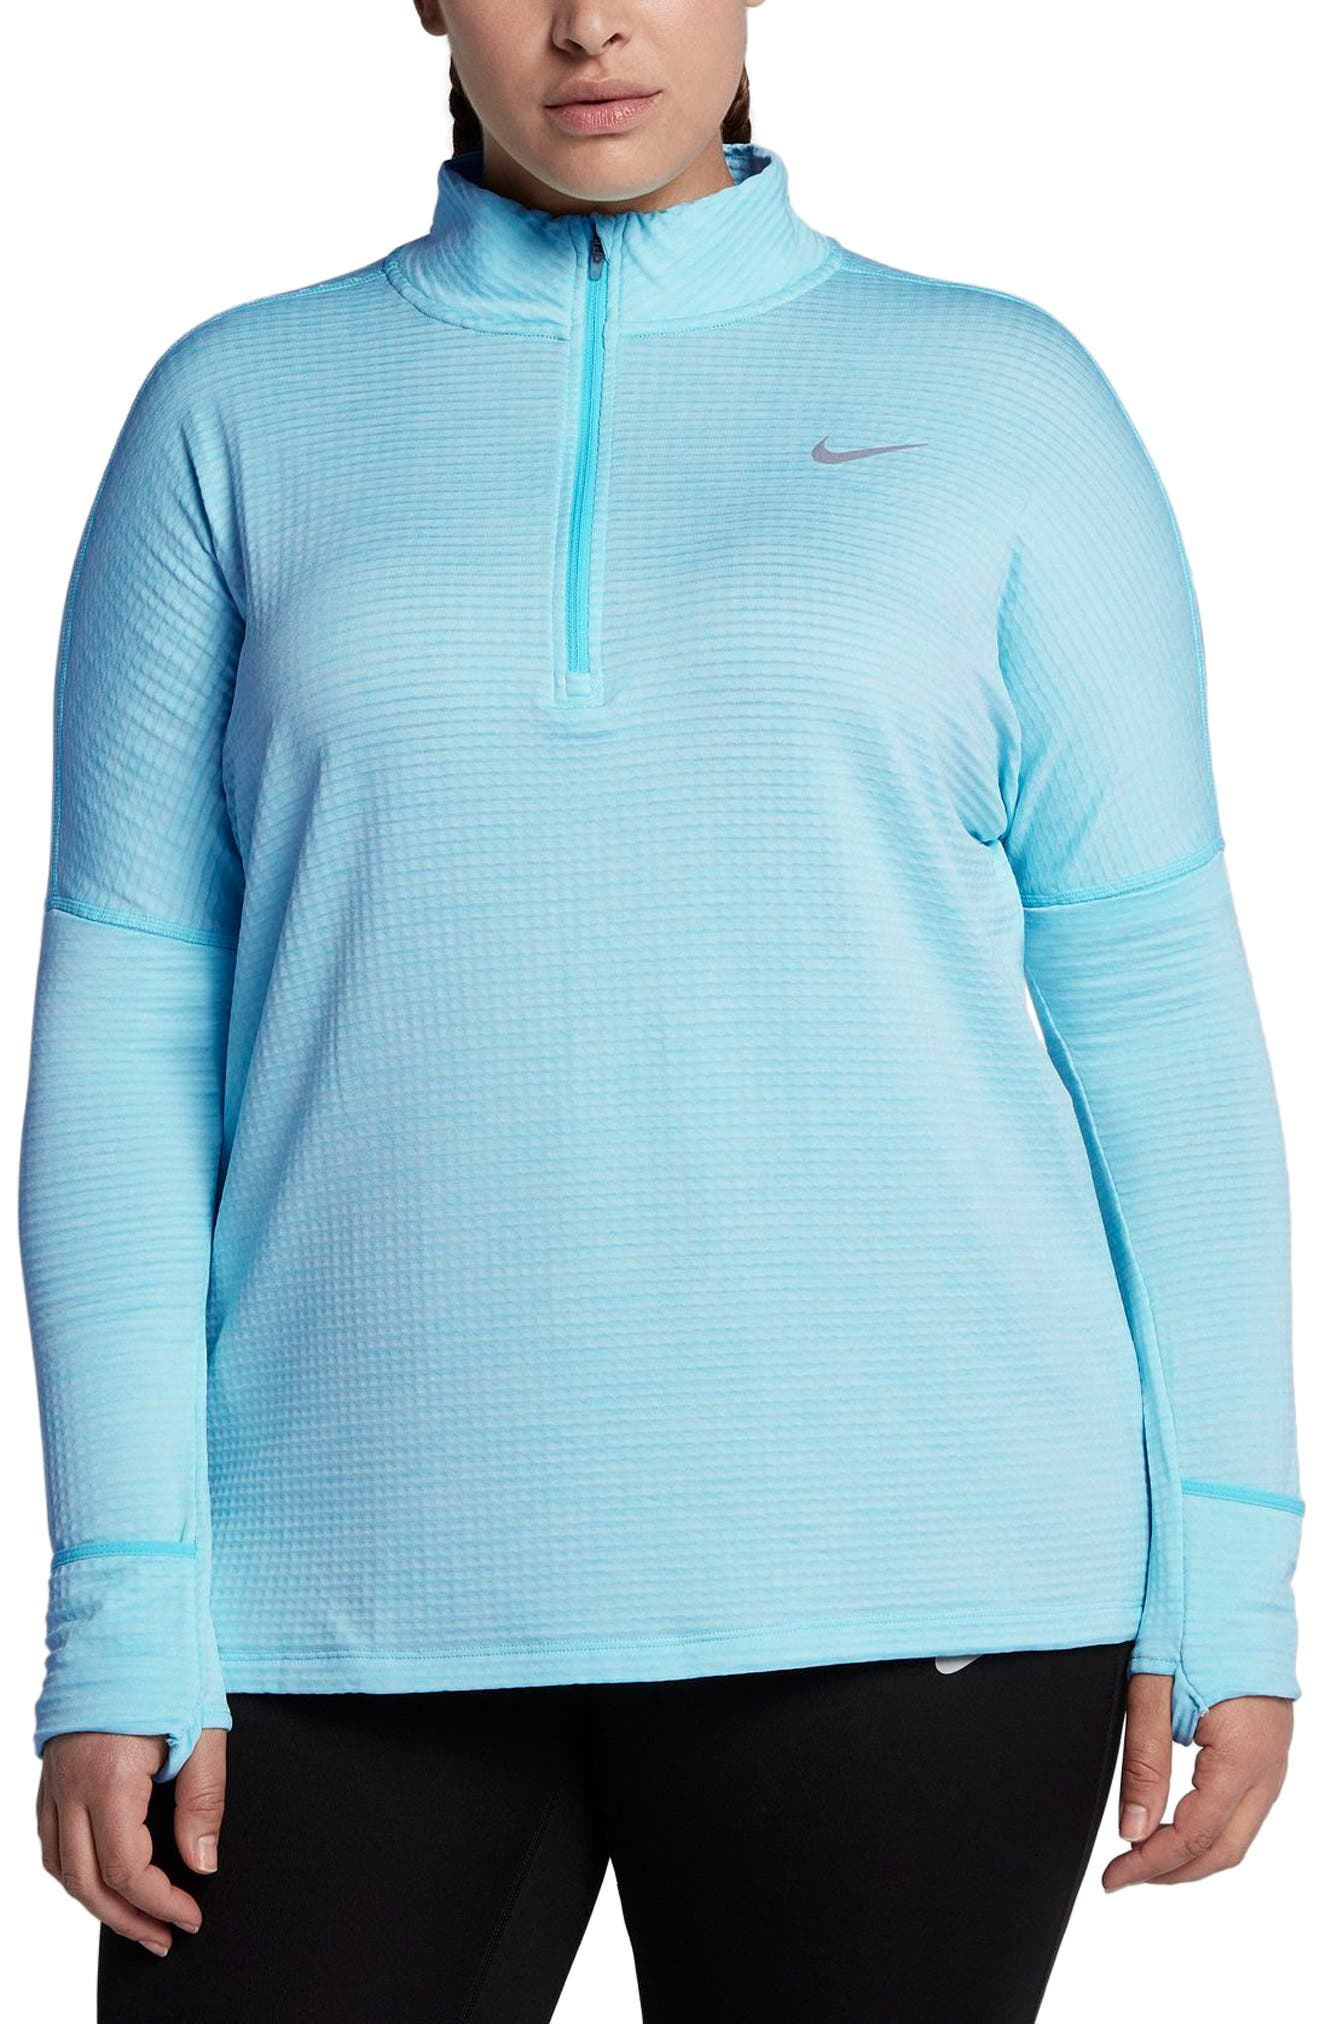 Nike Sphere Element Long Sleeve Running Top (Plus Size)